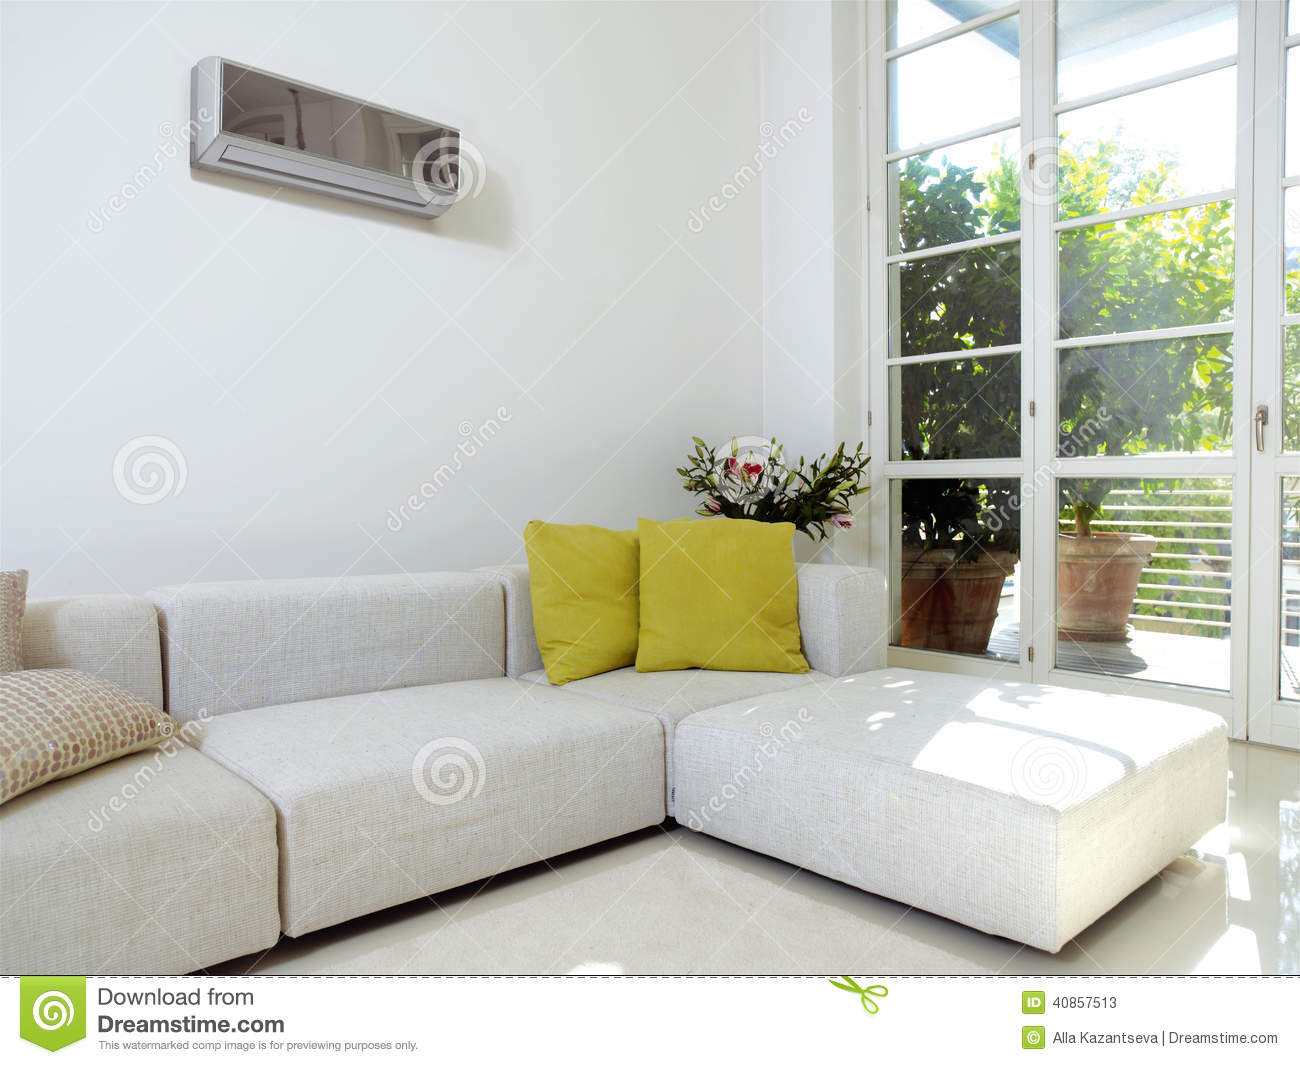 Superieur Interior Of An Apartment With Air Conditioner